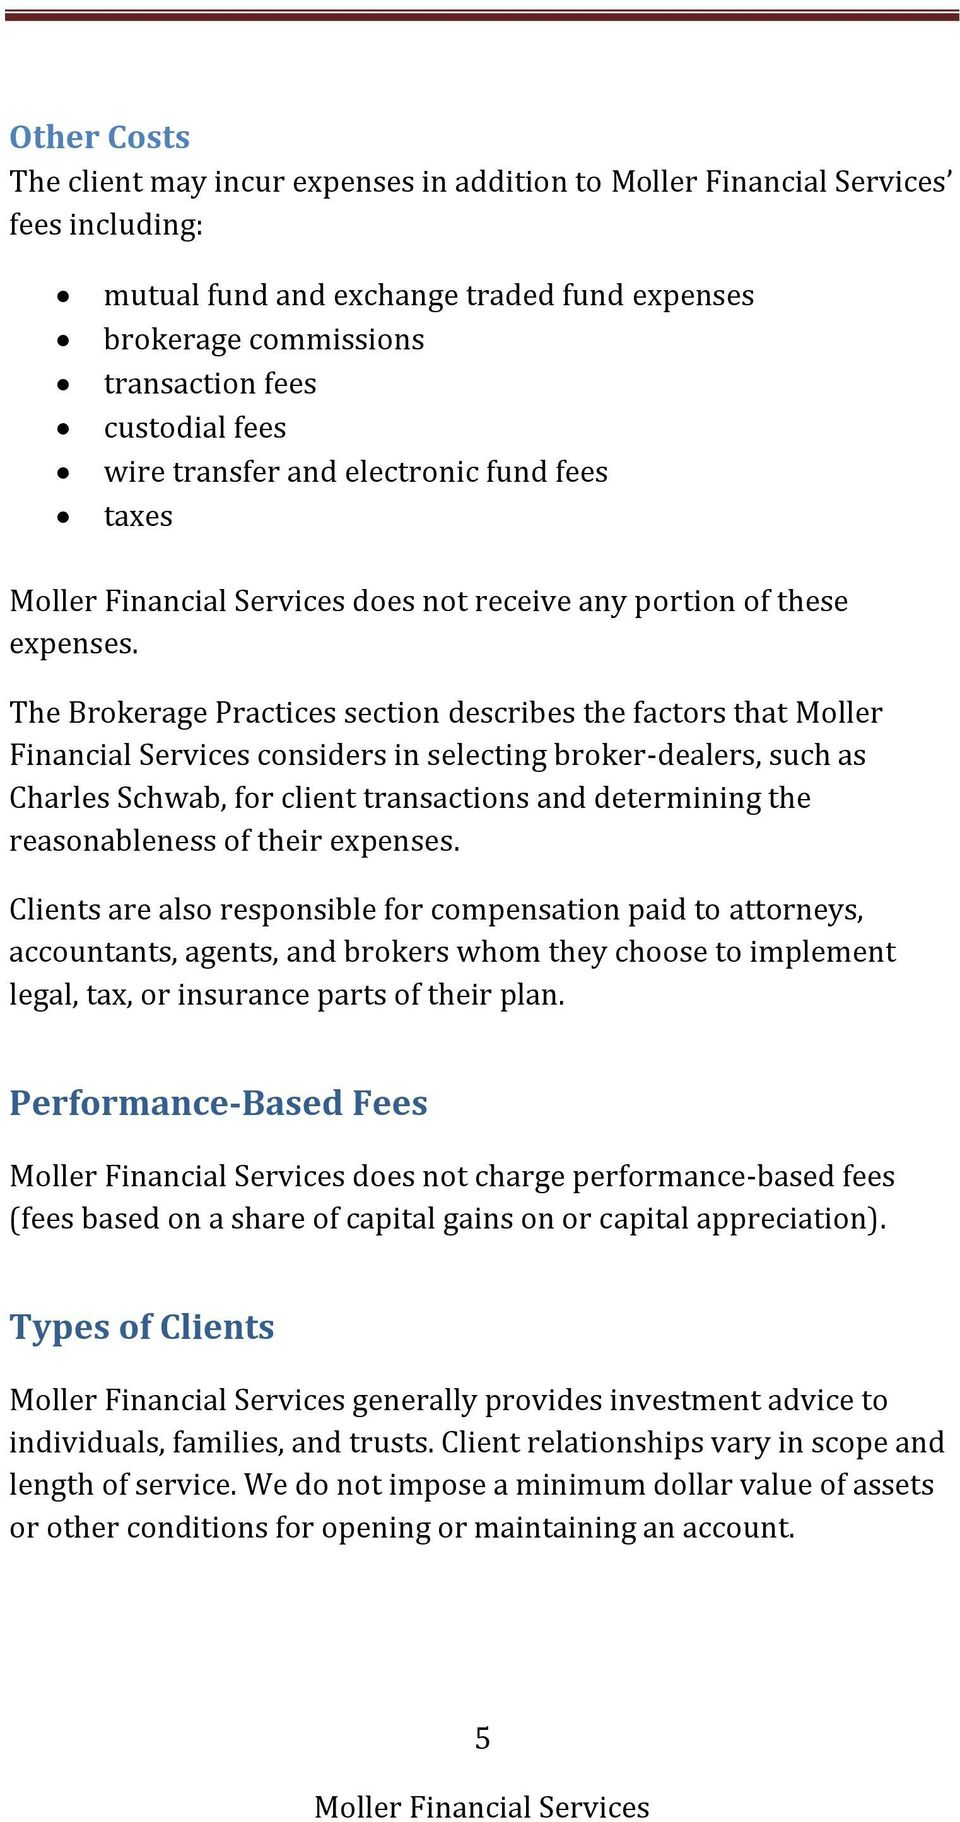 The Brokerage Practices section describes the factors that Moller Financial Services considers in selecting broker-dealers, such as Charles Schwab, for client transactions and determining the